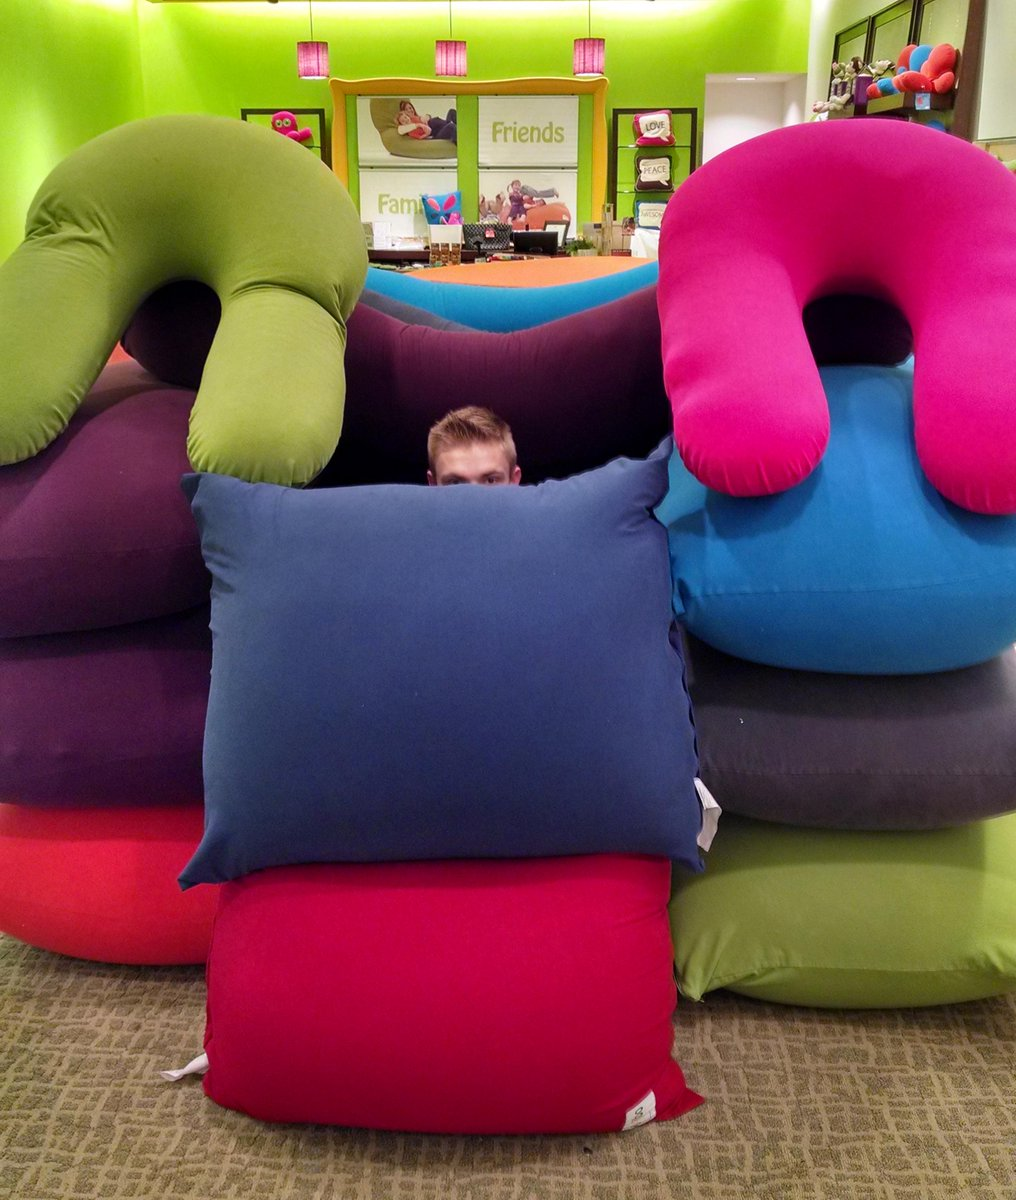 Yogibo Bean Bags On Twitter Wanna Build A Fort What Would You Awesome Tco YkNQXybPMF